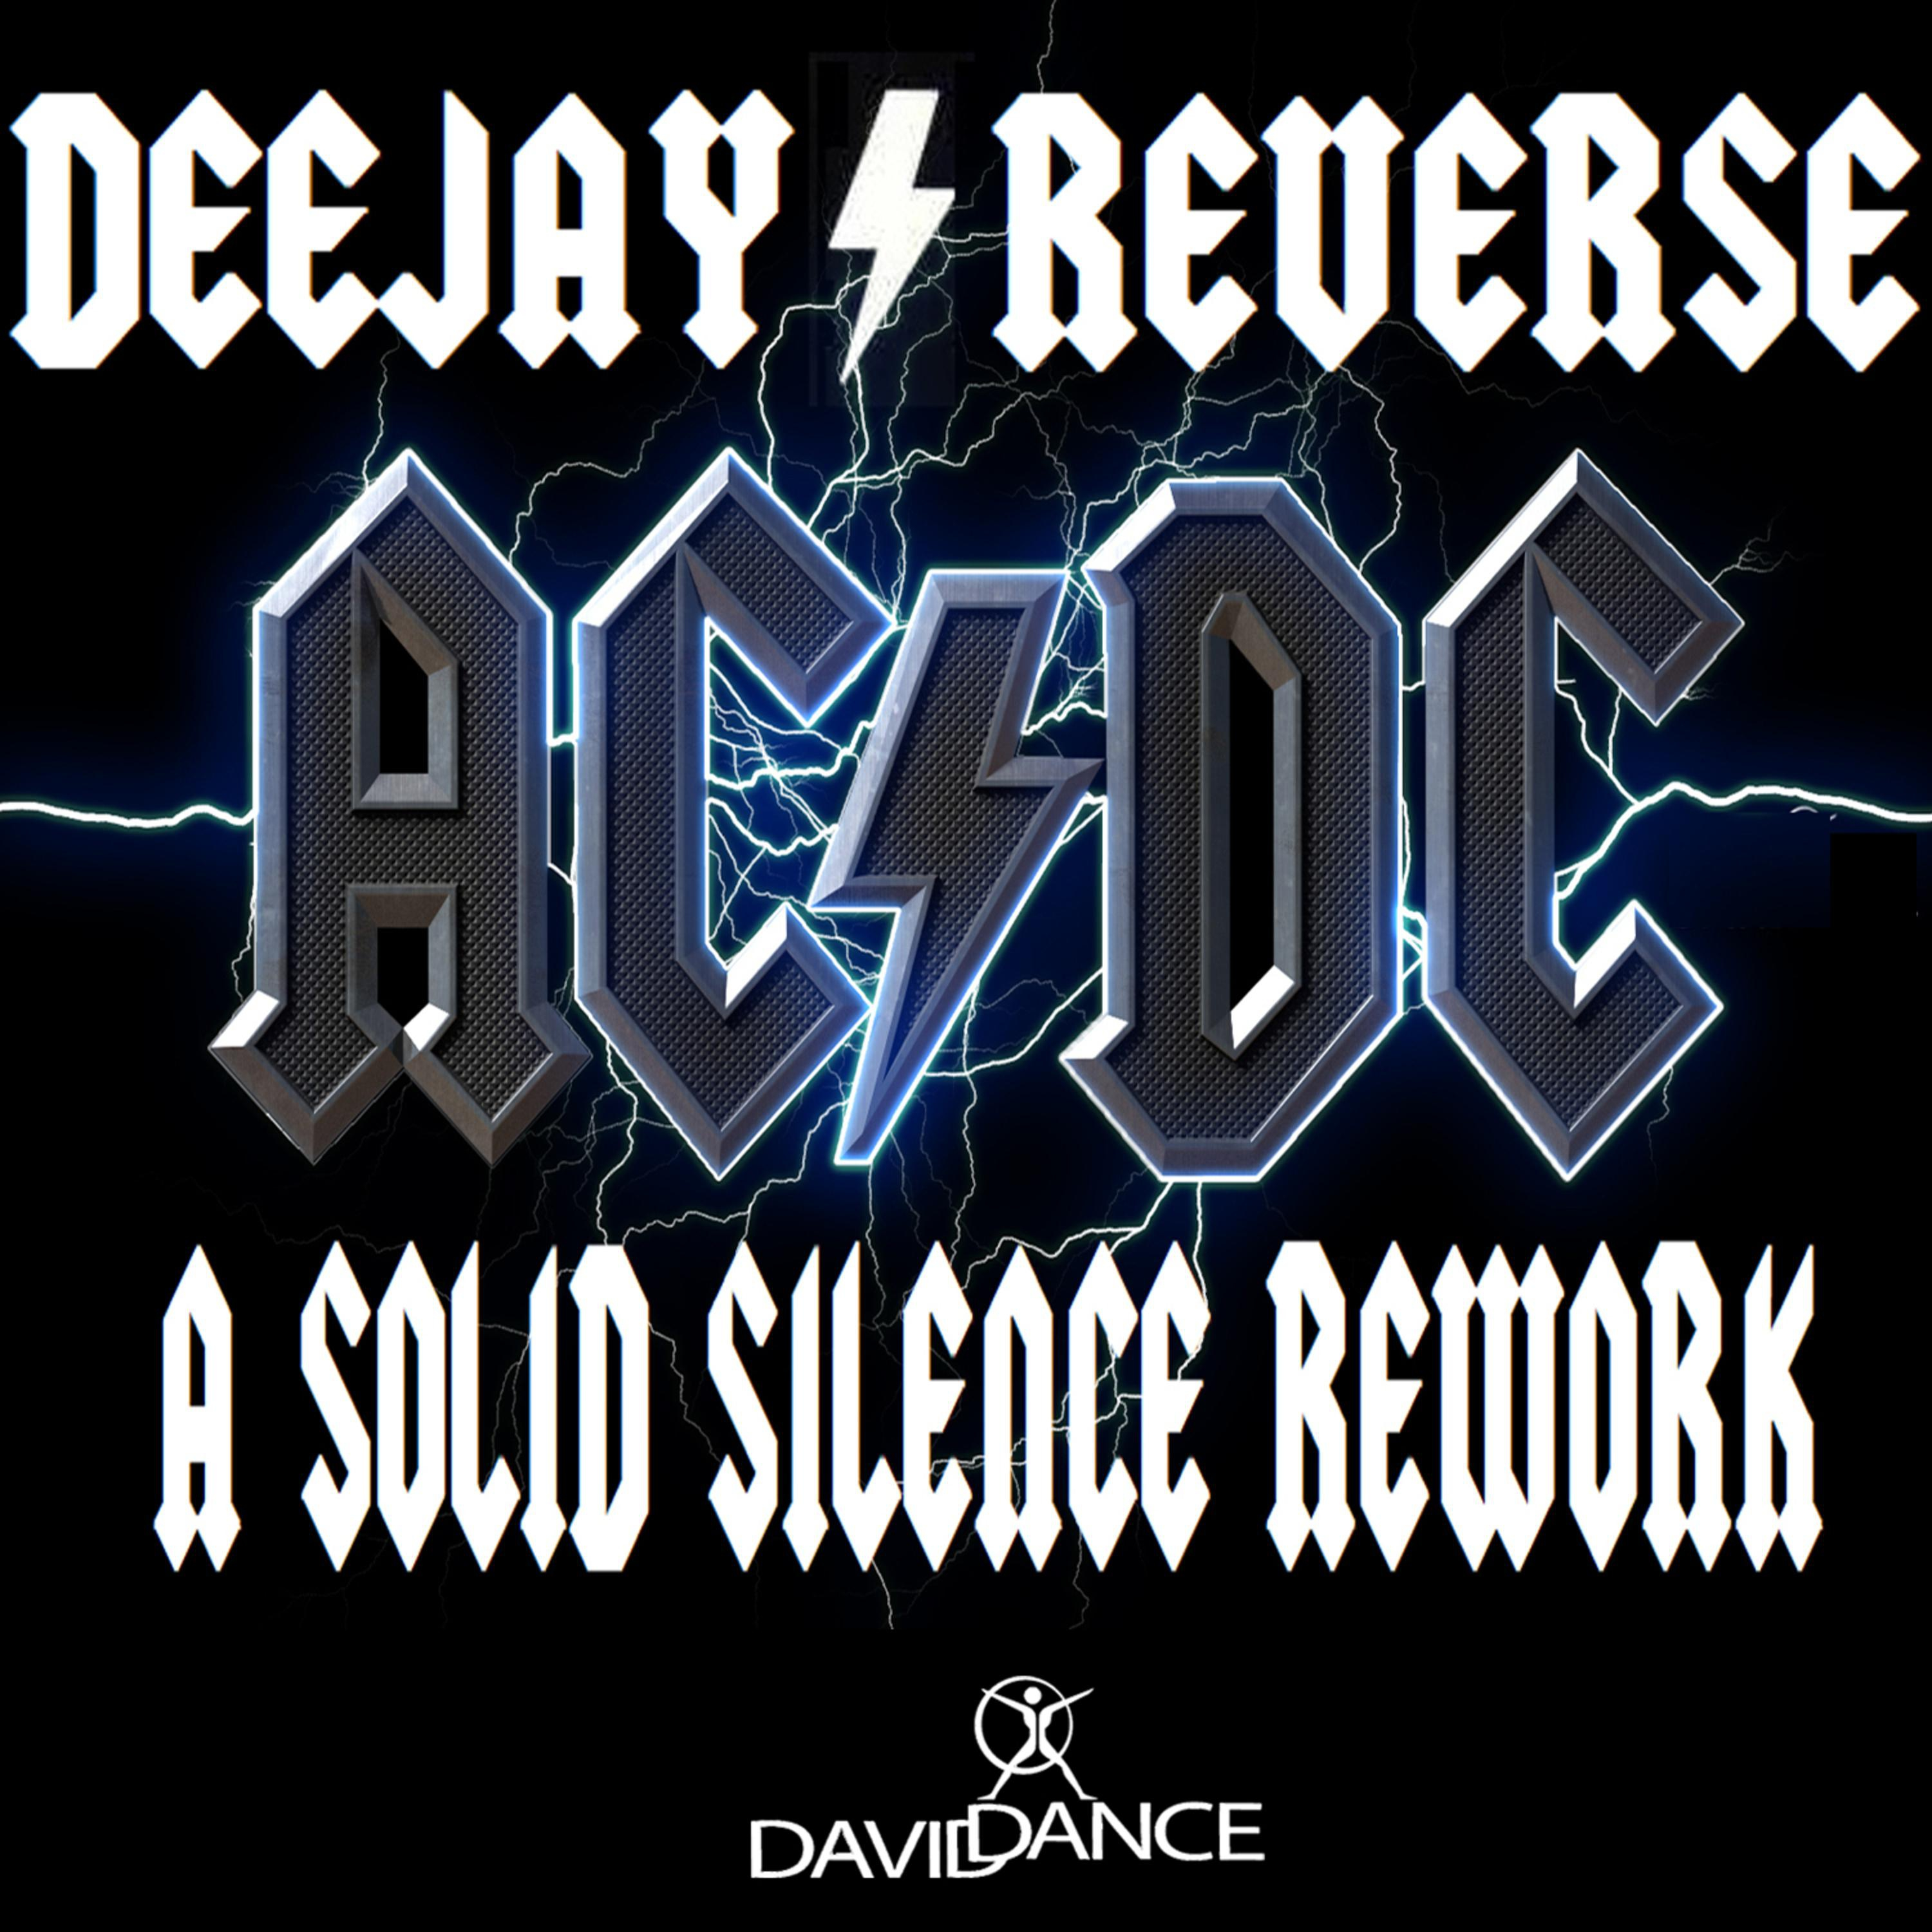 Deejay Reverse - A Solid Silence Rework (Original extended mix)